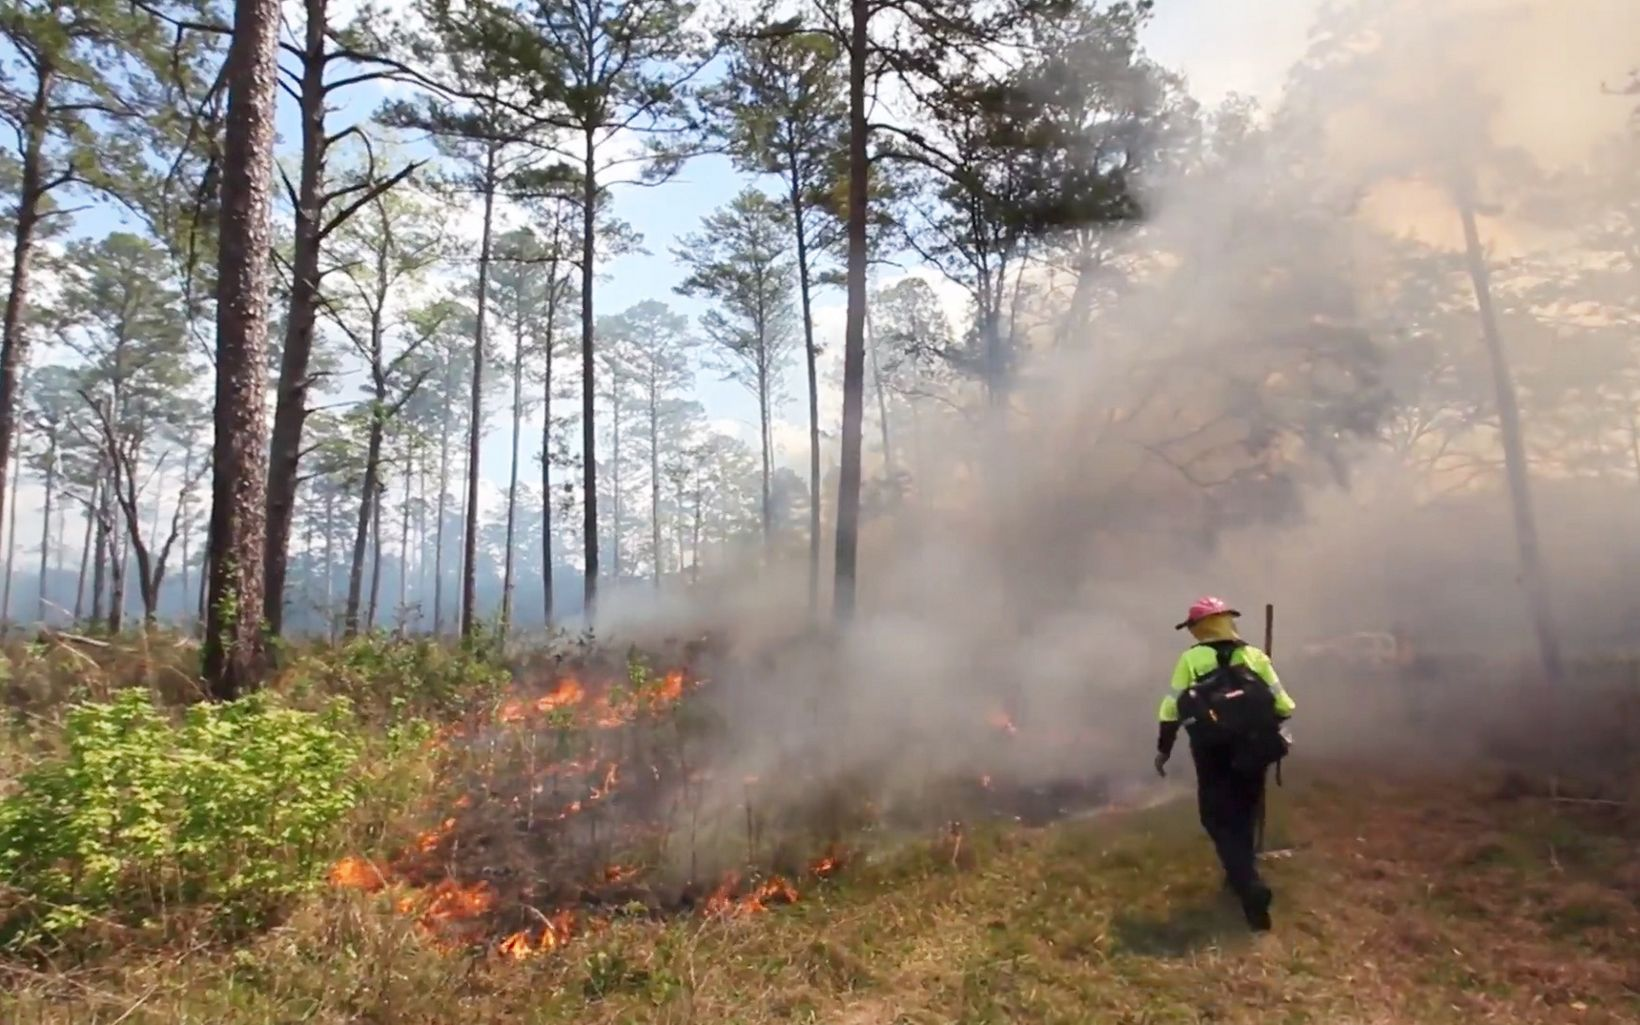 The episode describes the process of controlled burning at regular intervals to keep habitats healthy.